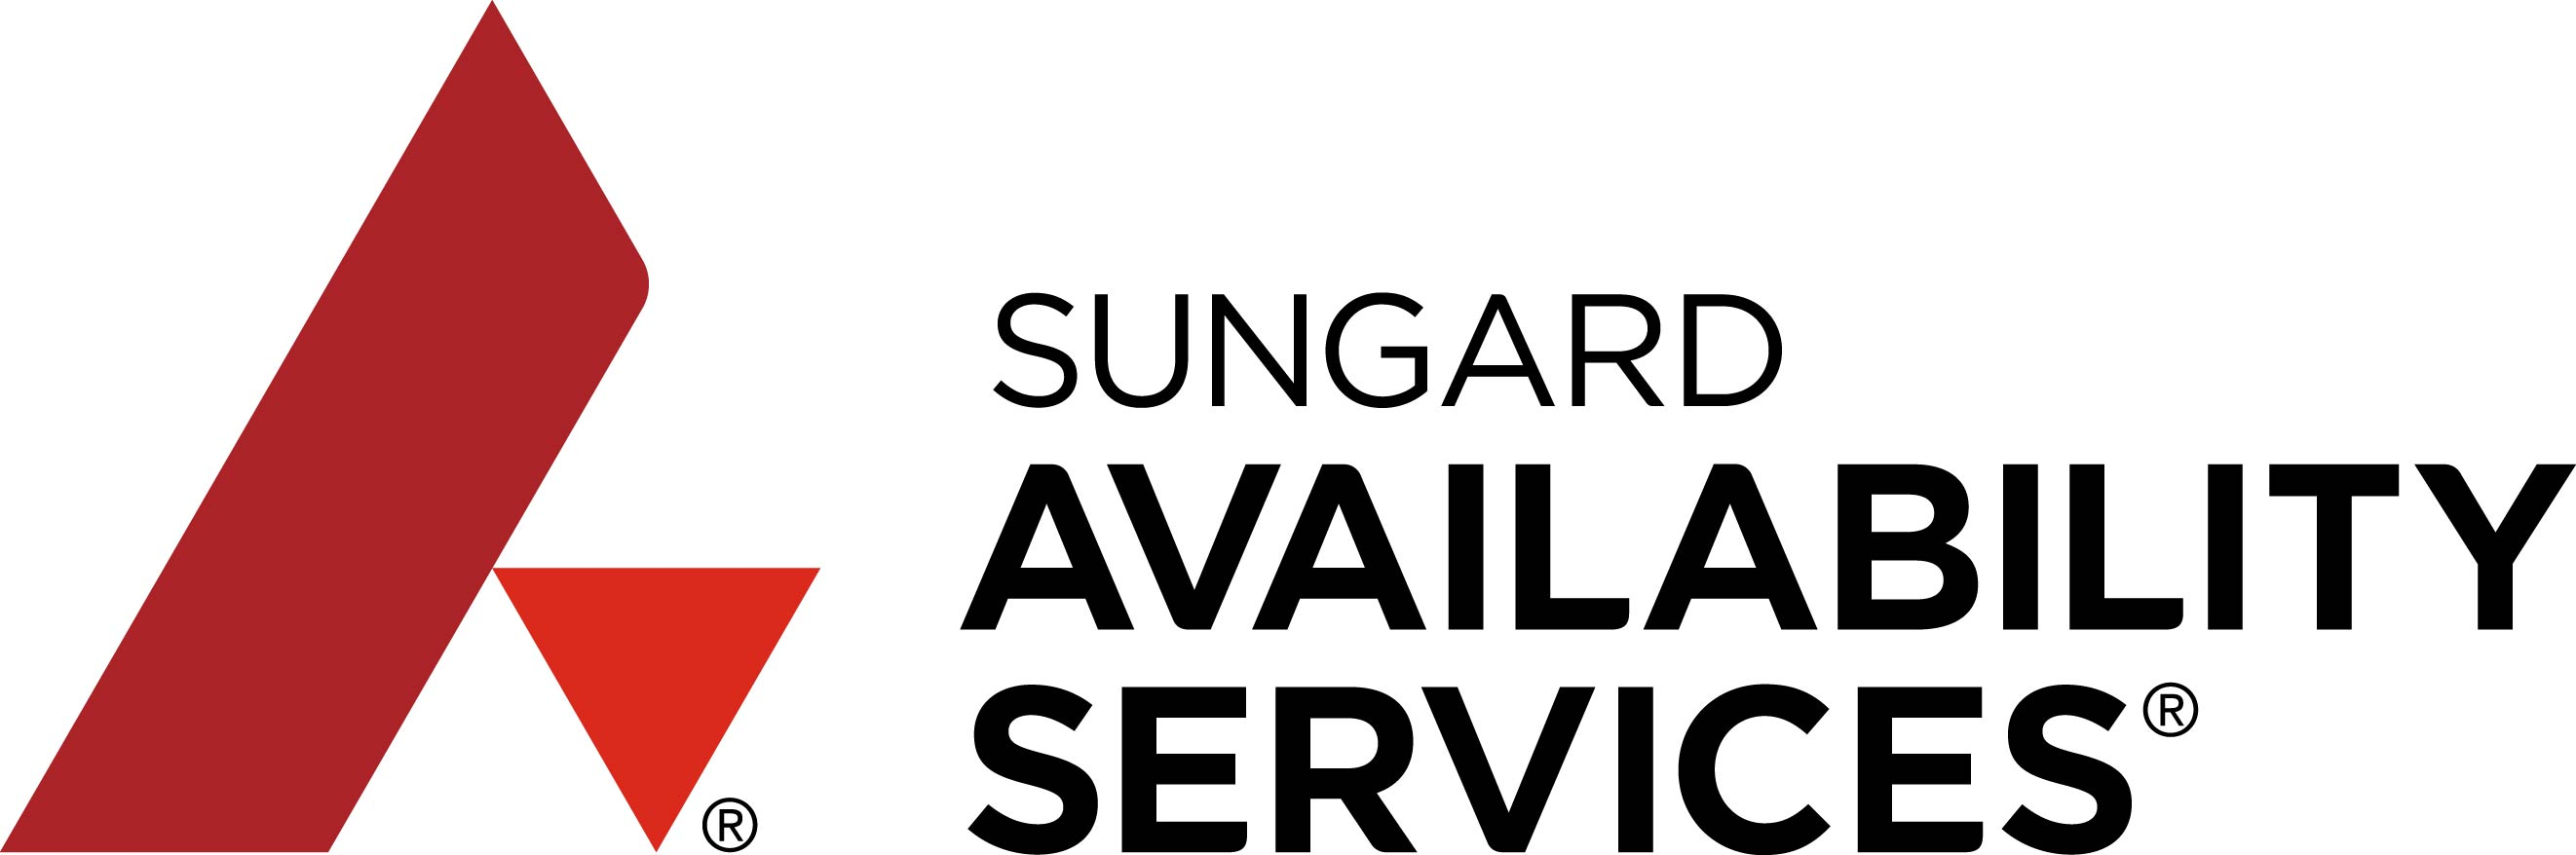 Sungard AS - logo